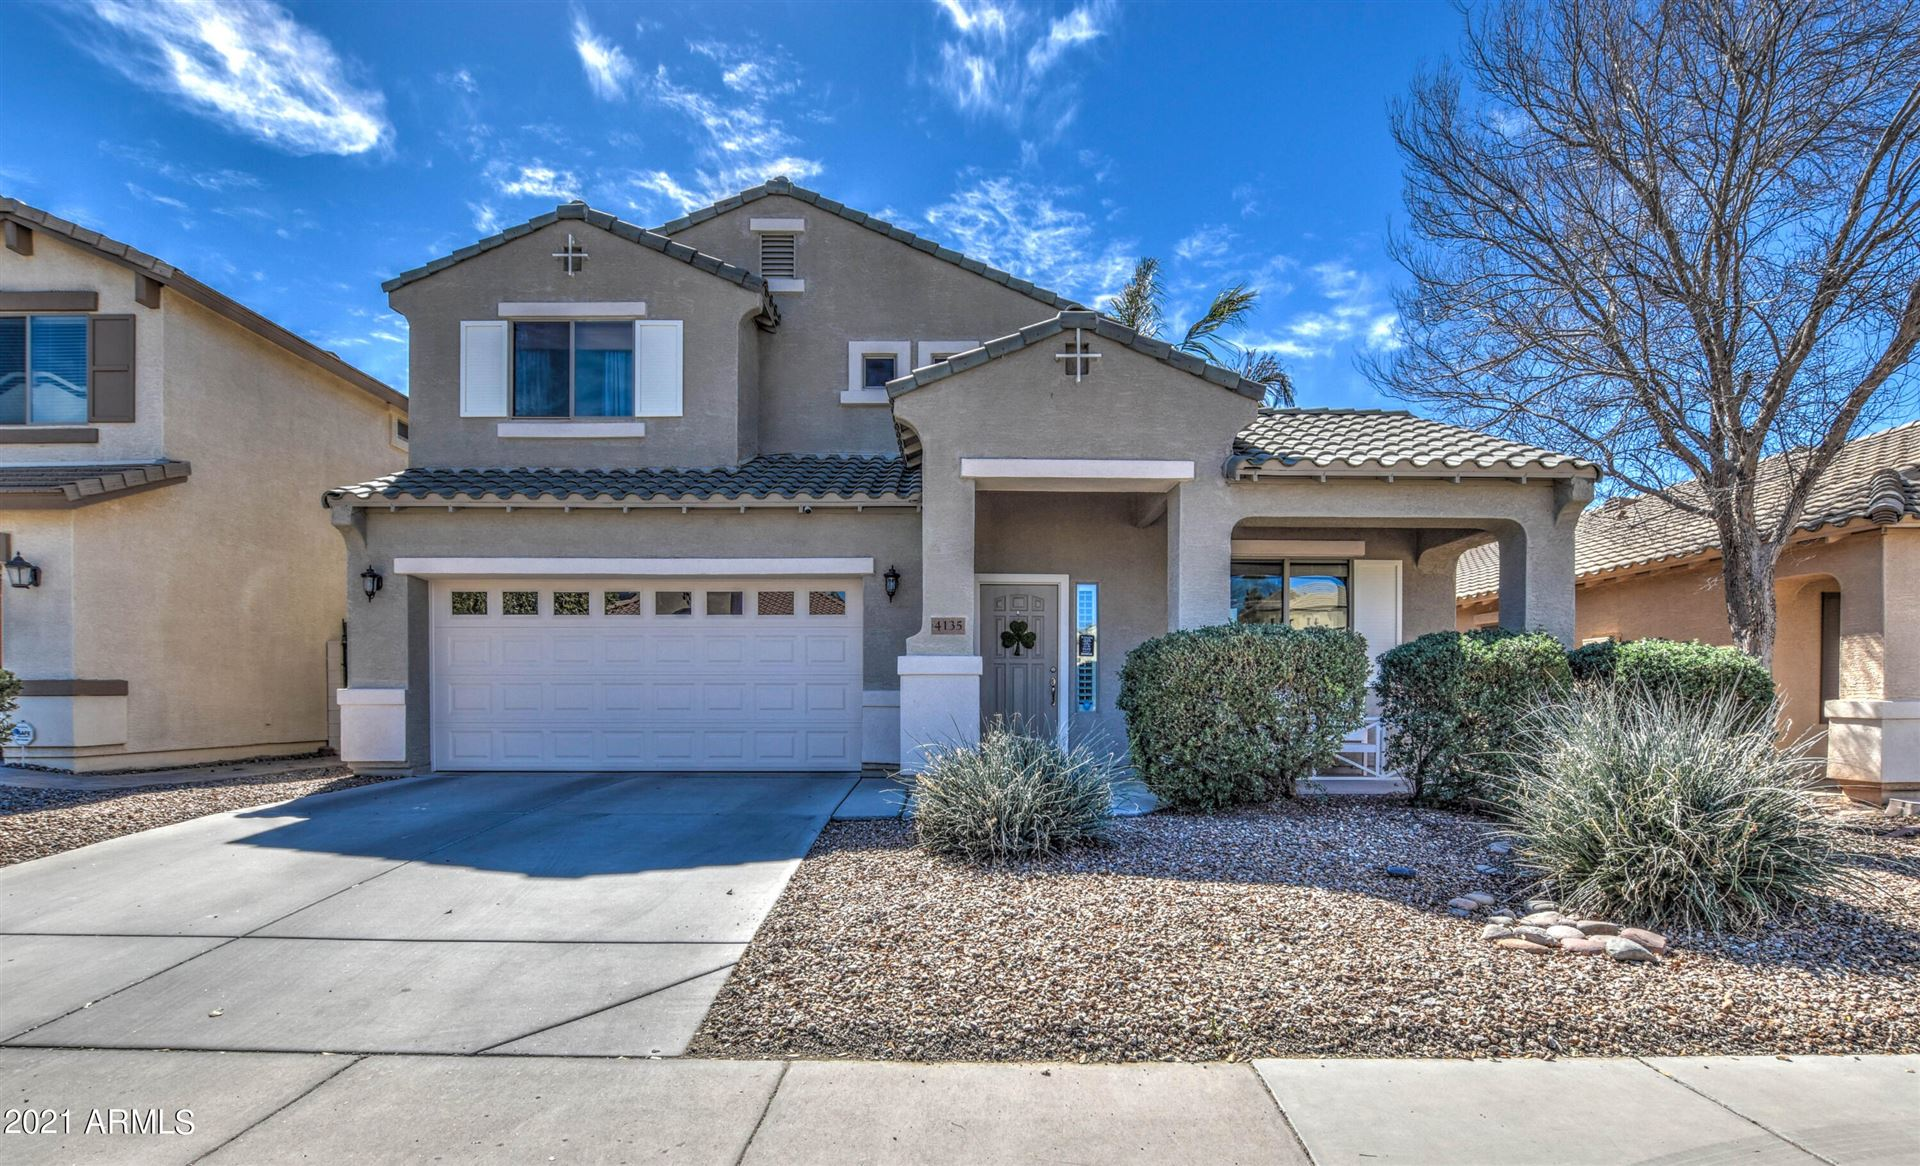 Photo of 4135 E AMARILLO Drive, San Tan Valley, AZ 85140 (MLS # 6202347)